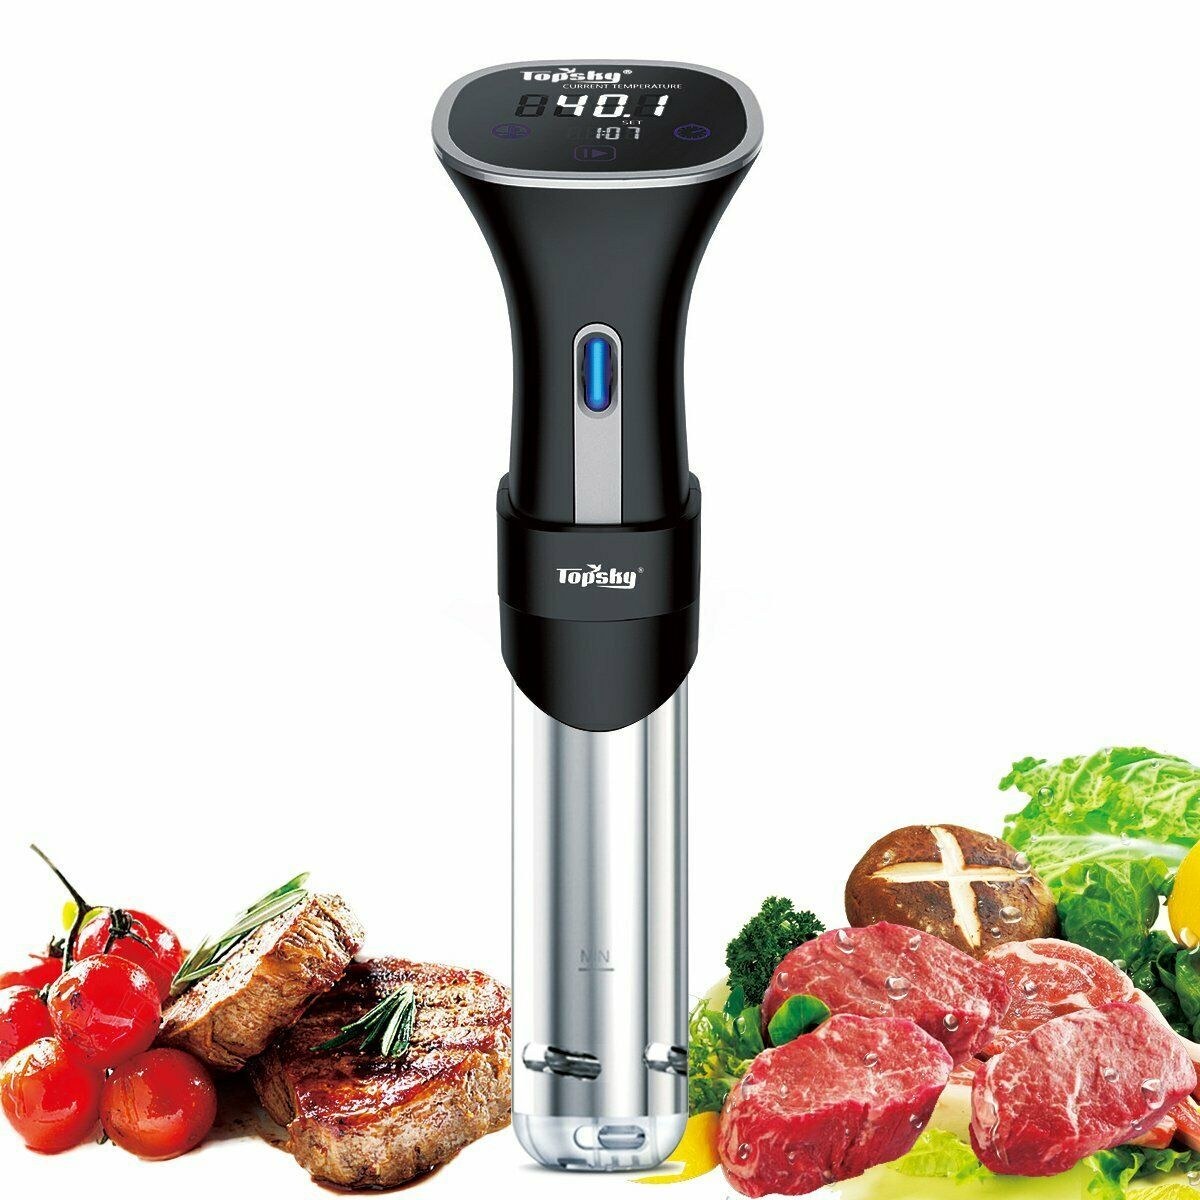 Sous Vide Cooker, Thermal Immersion Circulator Machine - New